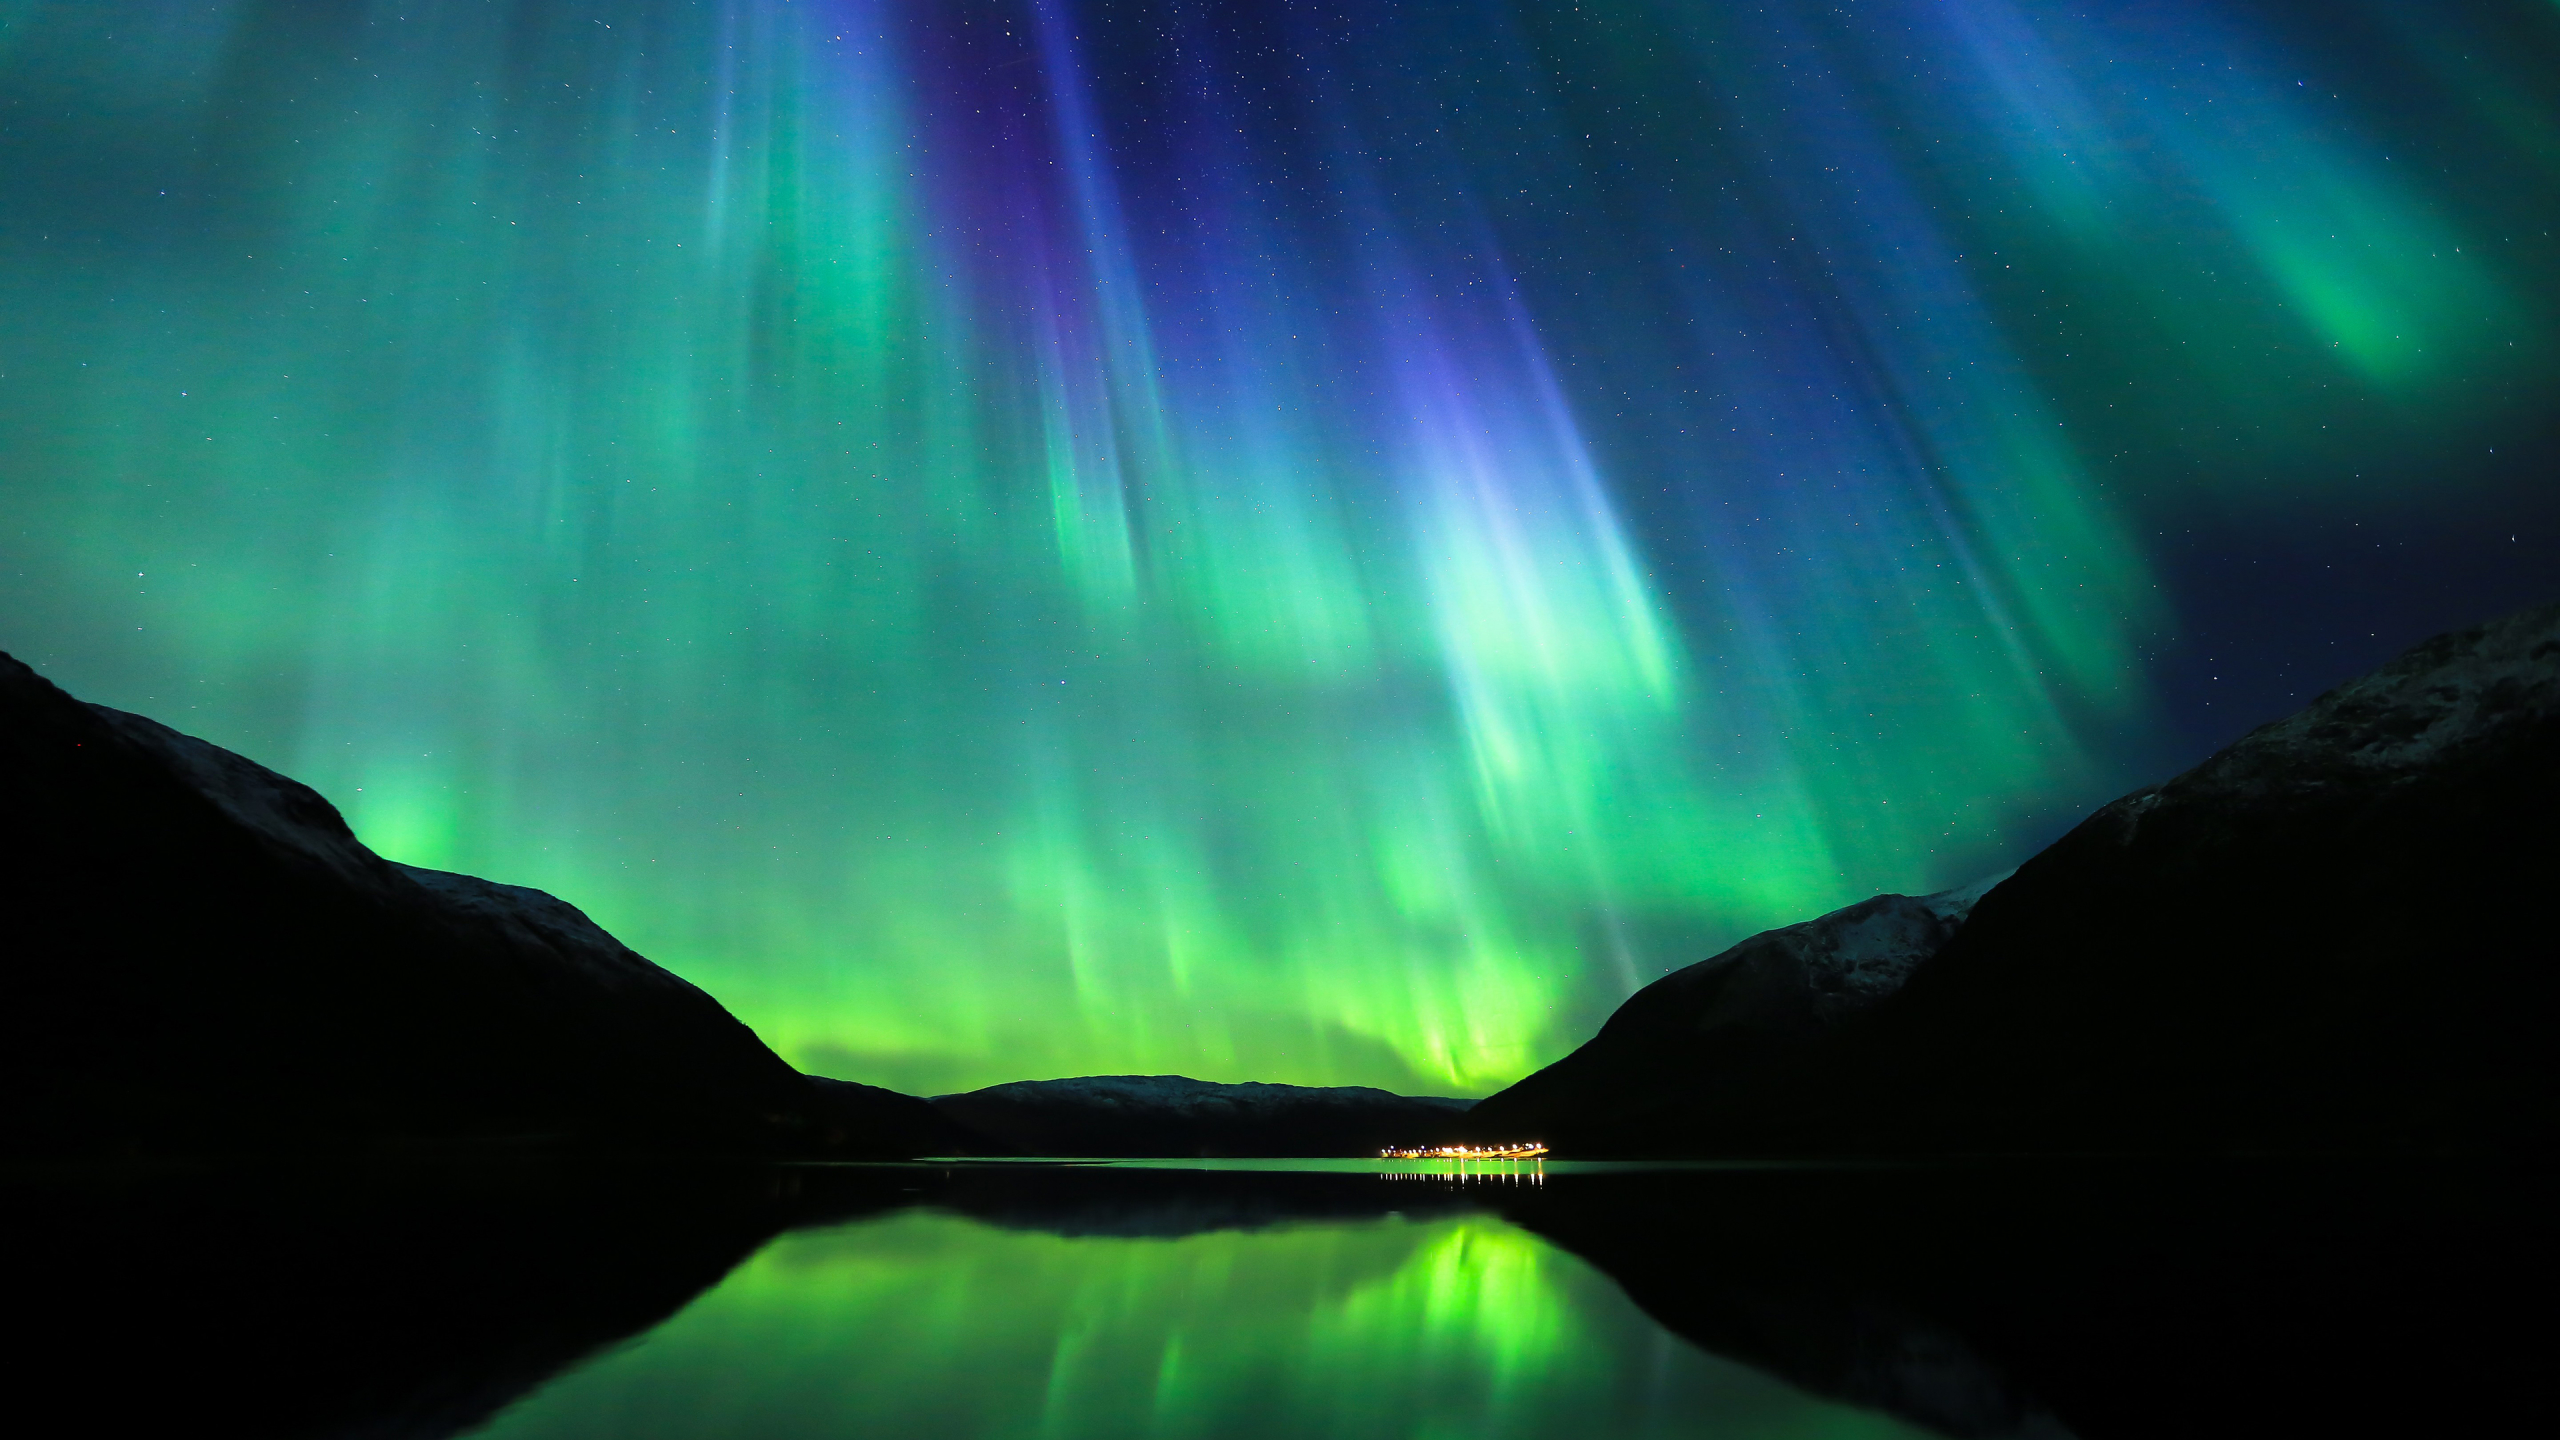 2560x1440 Aurora 4k 1440p Resolution Wallpaper Hd Nature 4k Wallpapers Images Photos And Background